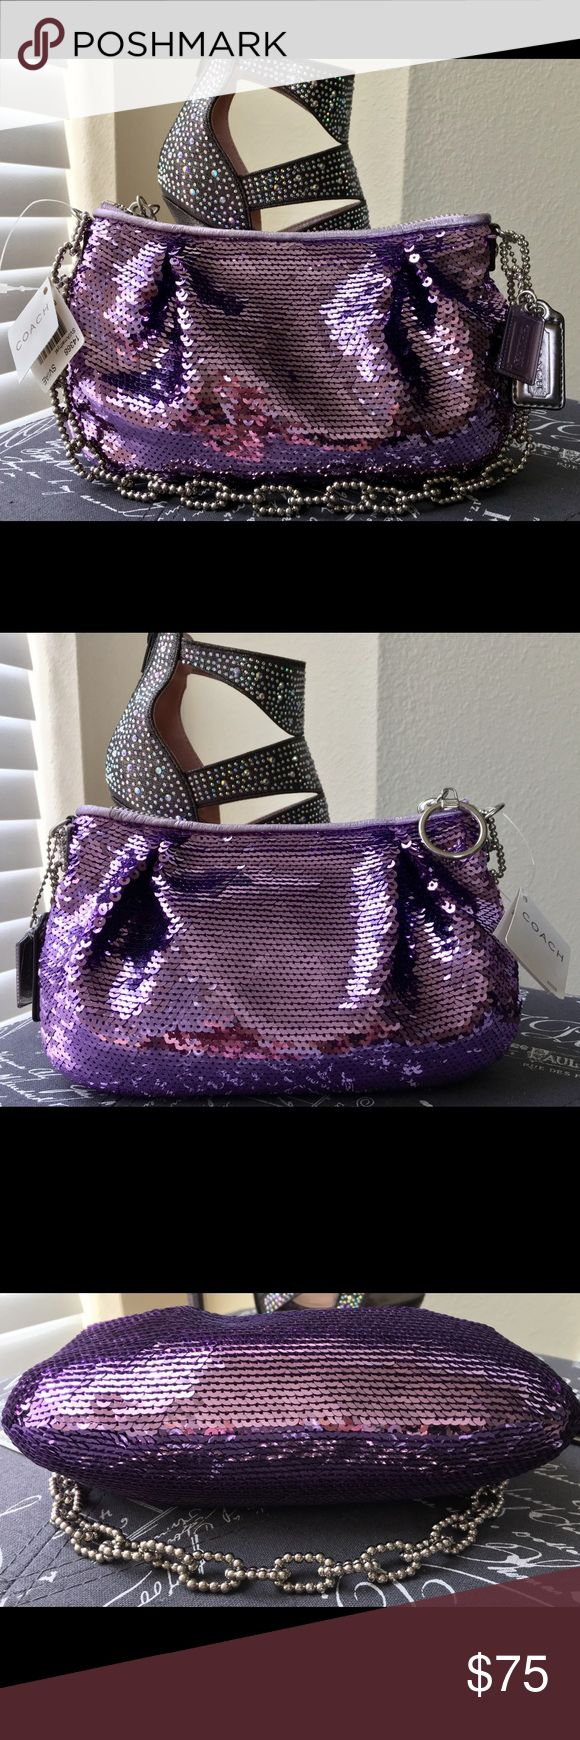 "NWT Coach Poppy Sequin Evening Bag 💜 NWT Coach Poppy Sequin Evening Bag 💜. Bedazzle your wardrobe with this one of a kind bag!!!! Interior 1 organizer pocket and 1 zip compartment. Includes original dust cloth. Strap drop measures 7.5"" 💜💜💜 Coach Bags Mini Bags"